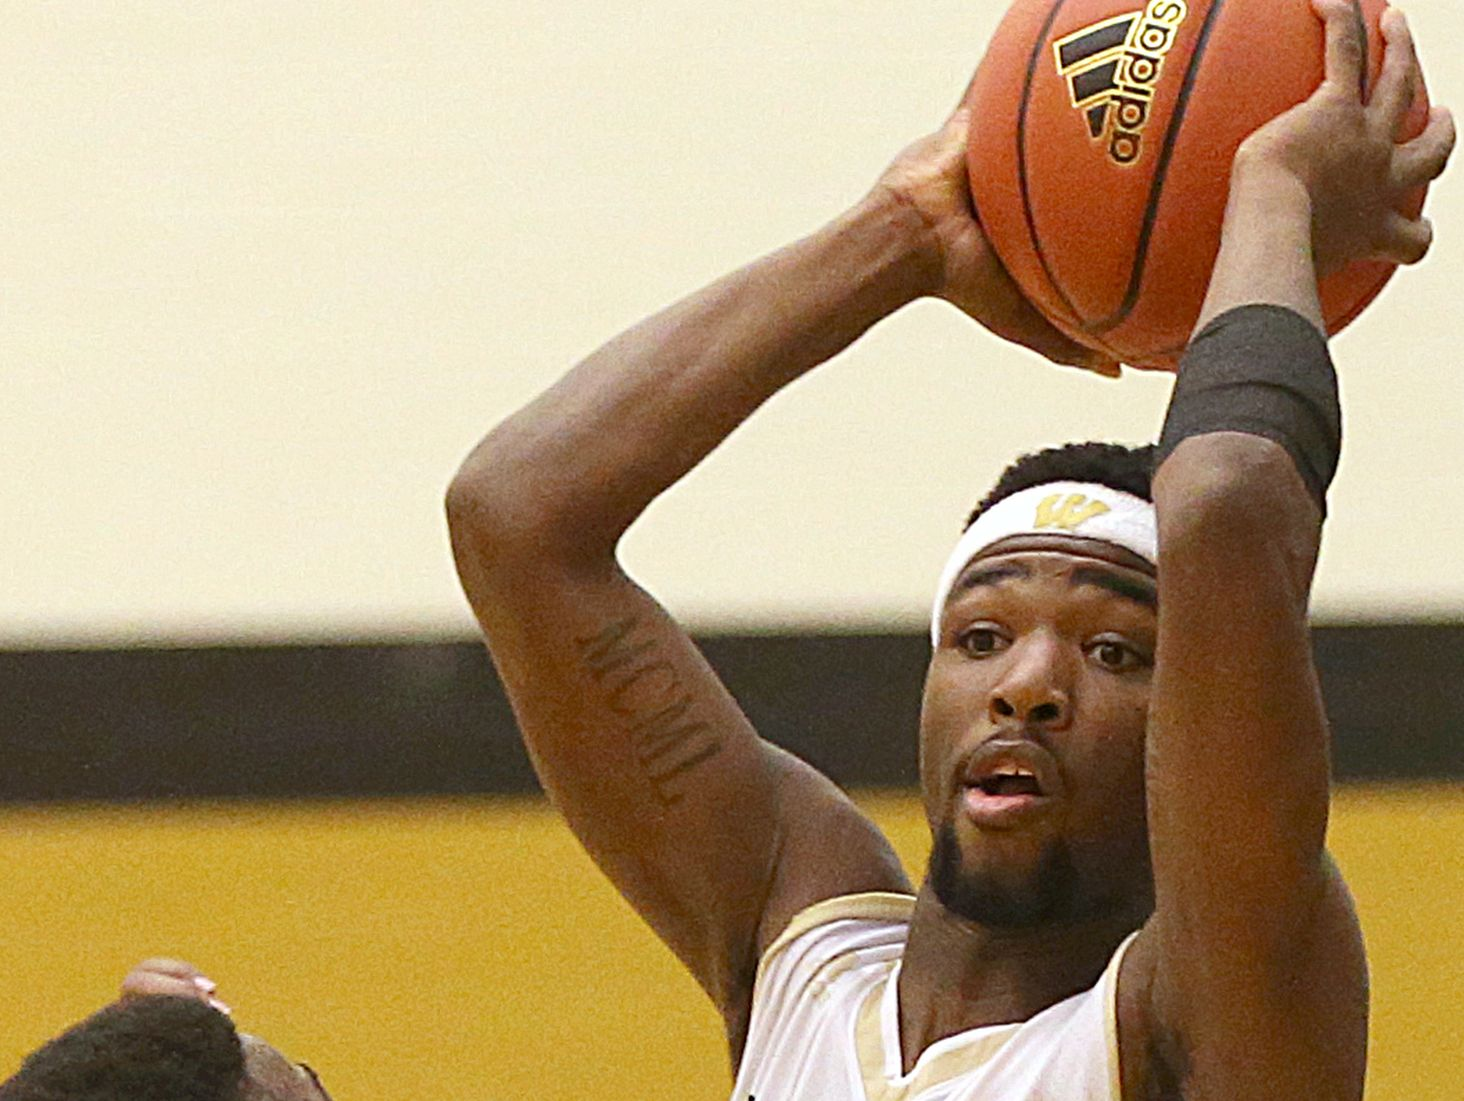 Warren Central's Trequan Spivey had 17 points and eight rebounds in the Warriors' win over Decatur Central on Tuesday.